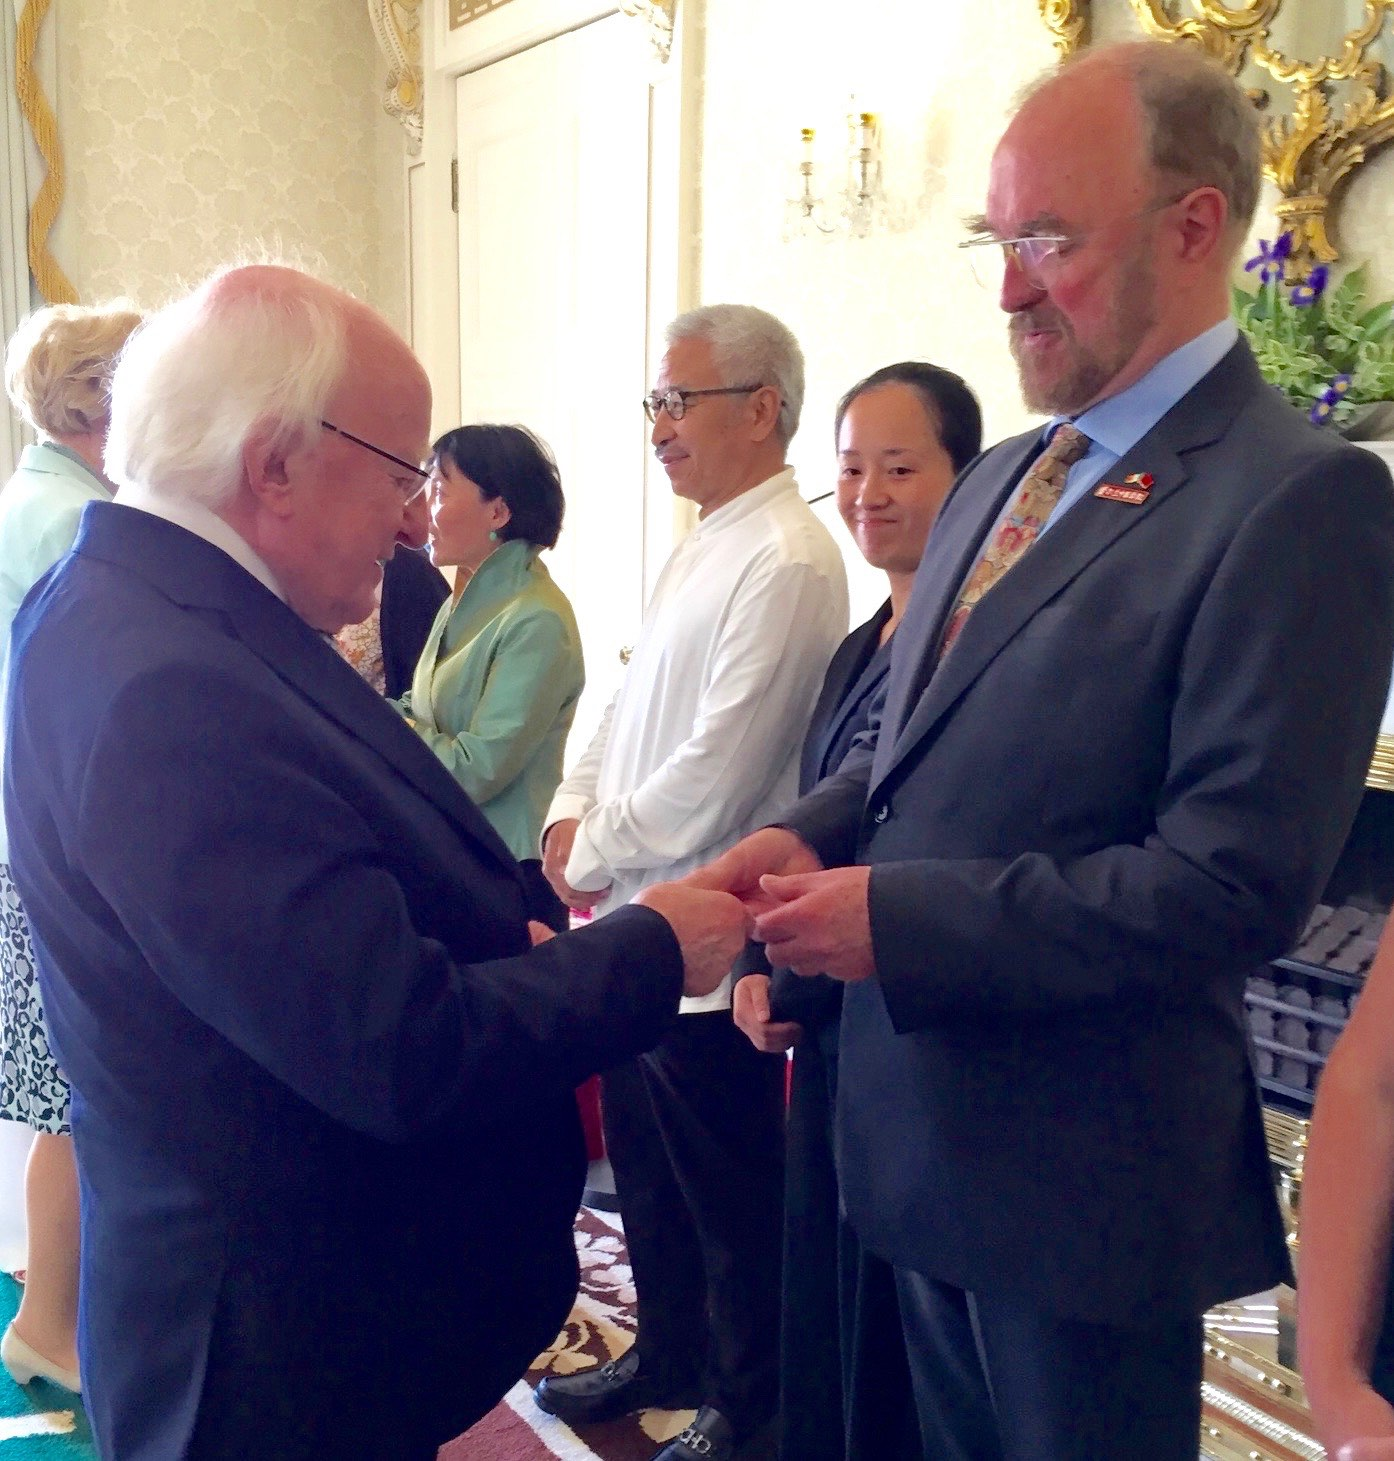 President Higgins and Professor Shanahan